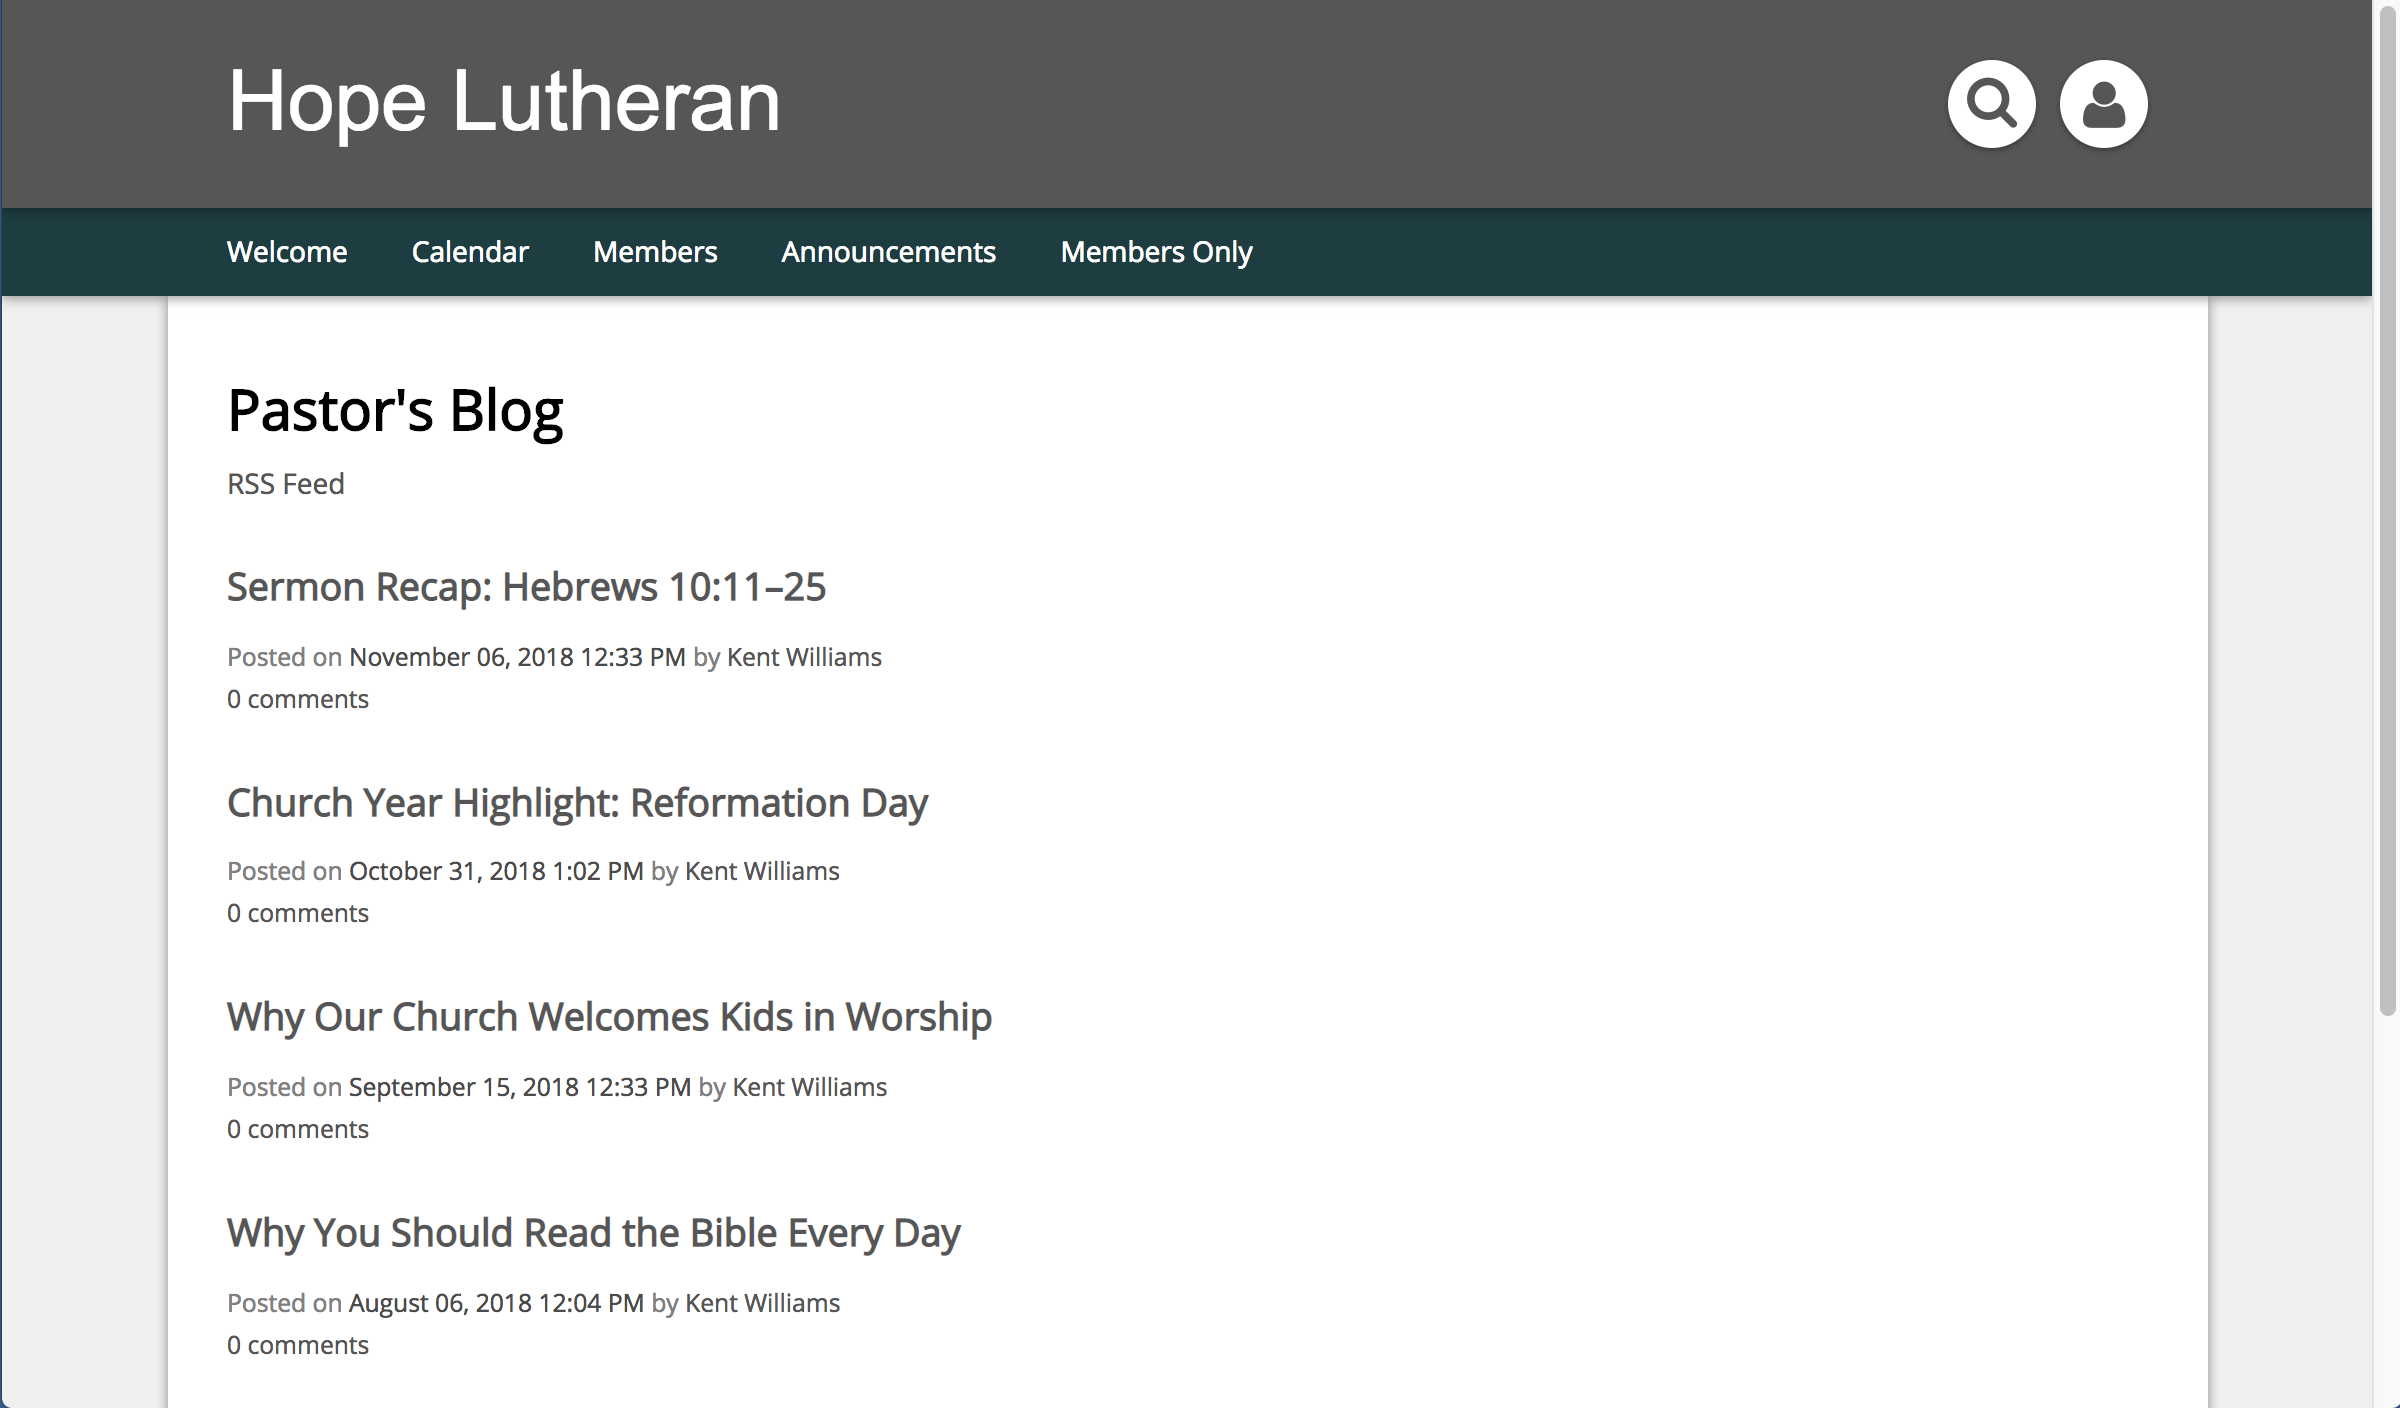 Screenshot of Feed Used for Pastor's Blog